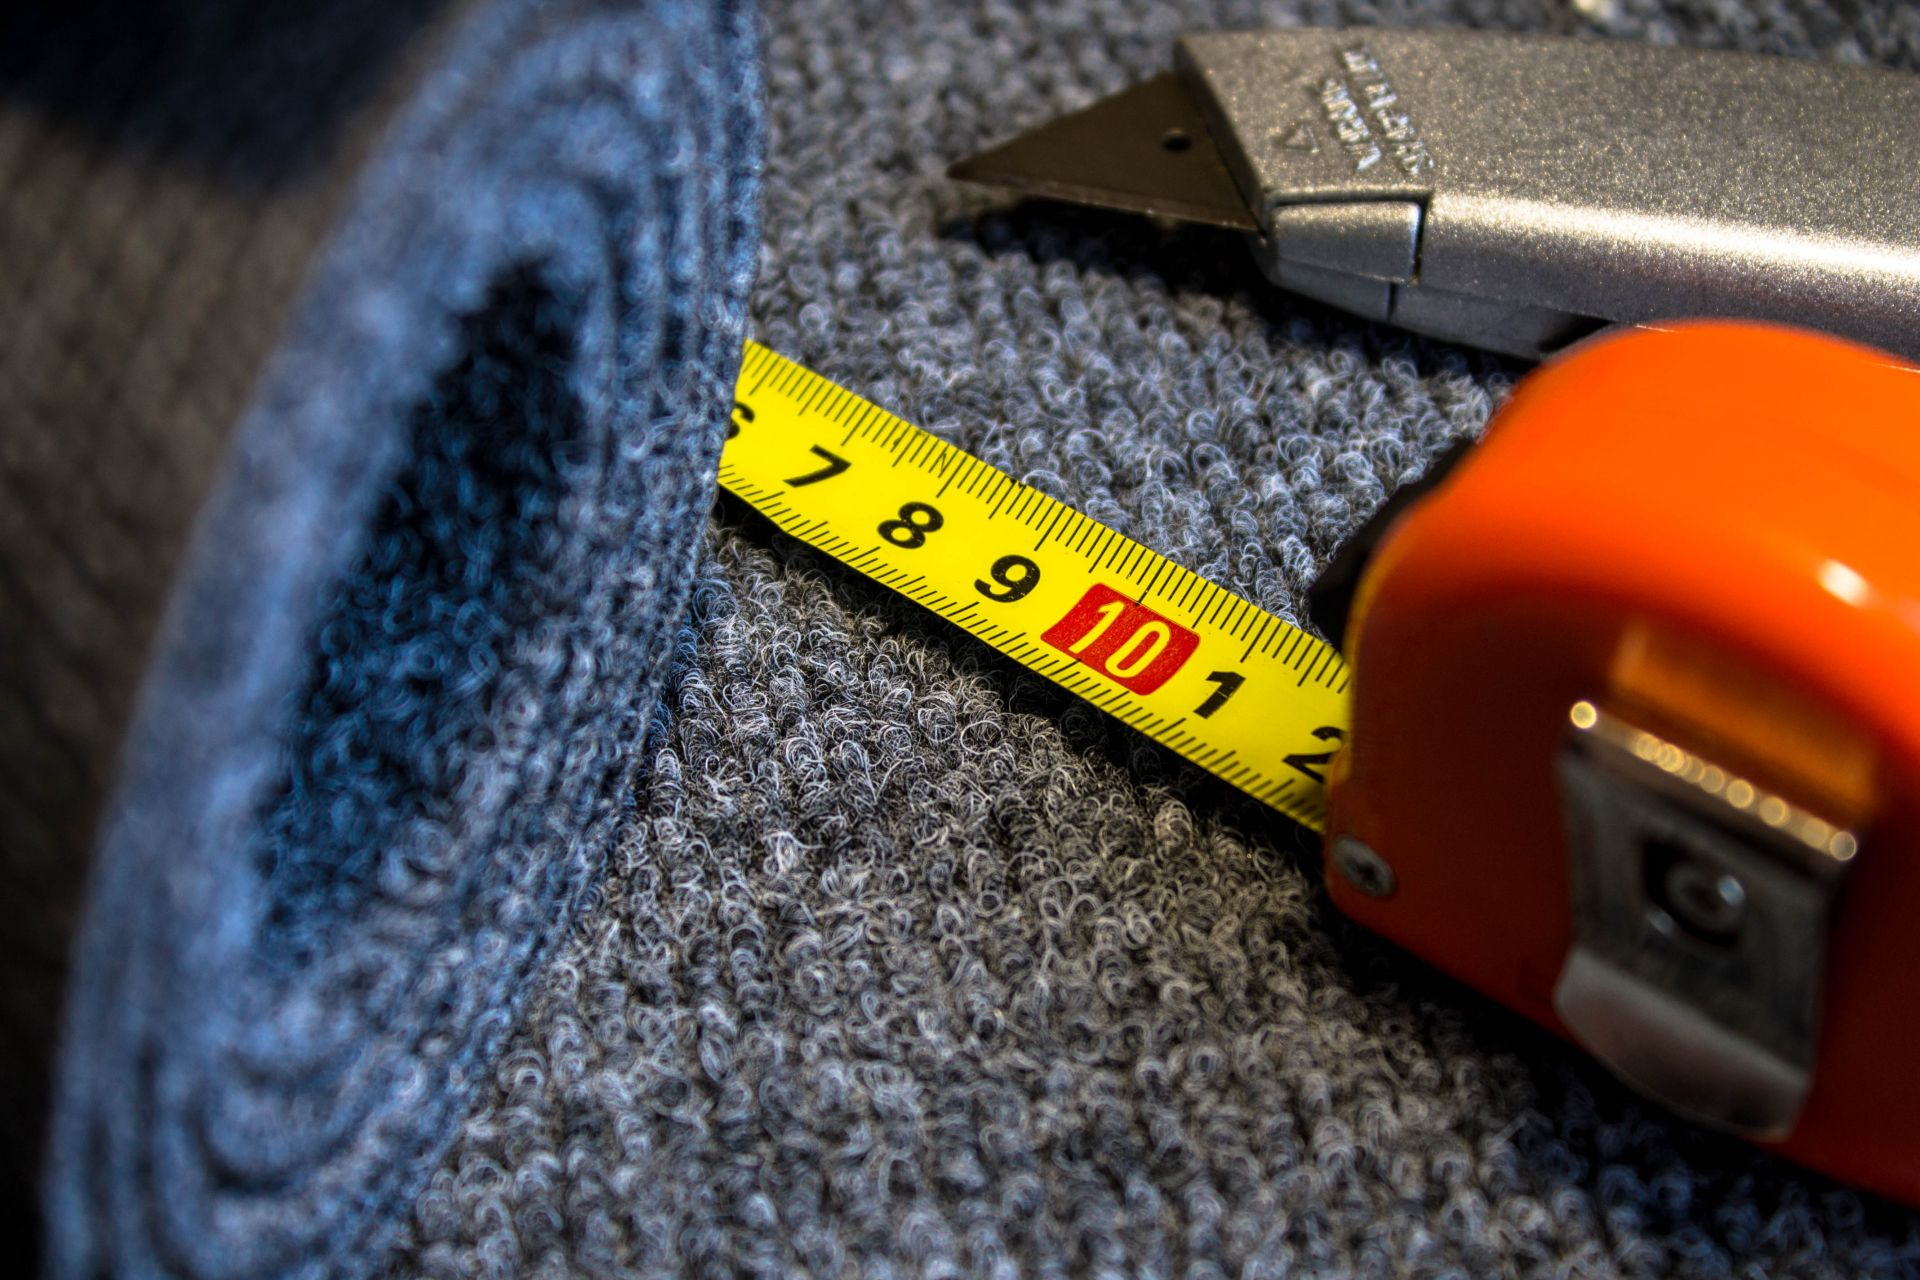 Carpet with measuring tape and cutter